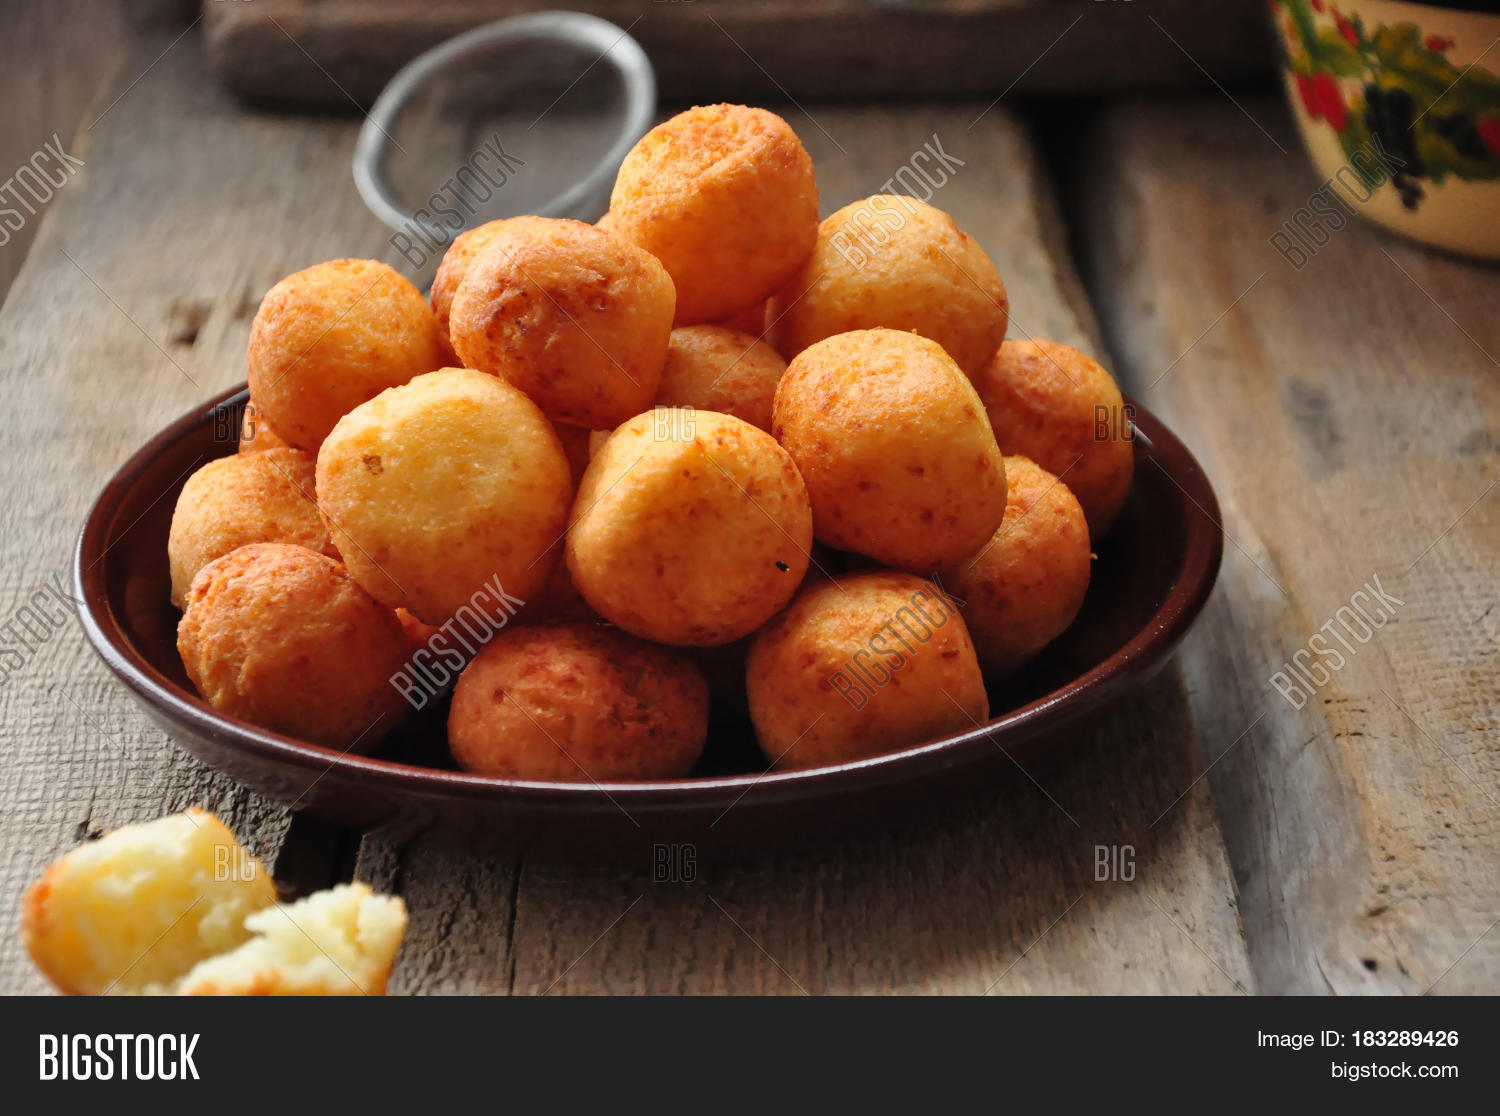 Small balls of freshly baked homemade cottage cheese doughnuts in a plate on a wooden background. Rustic style.